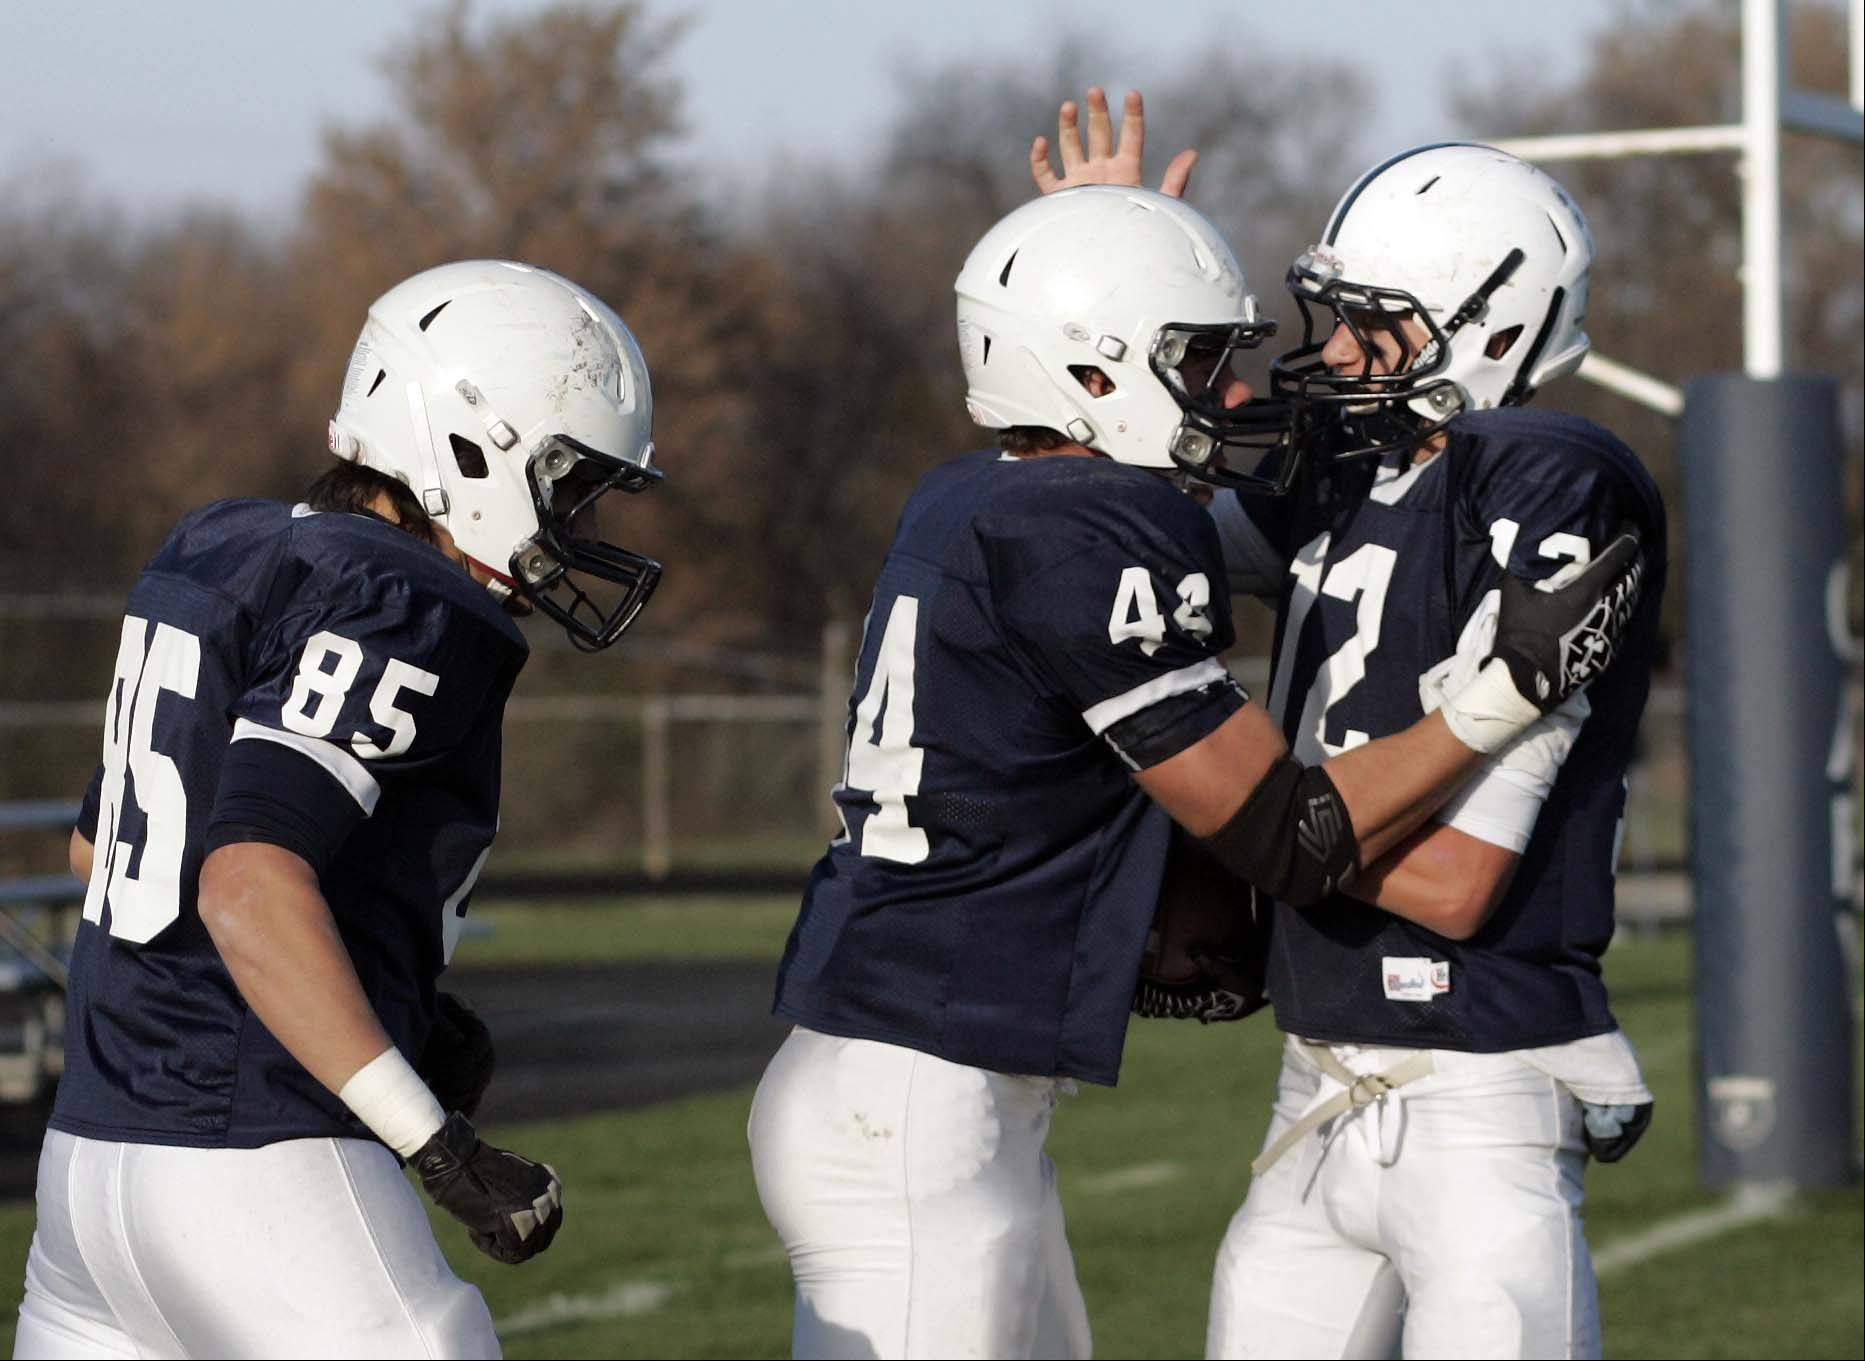 Cary-Grove's Kyle Norberg is greeted in the end zone by his team after his first touchdown of the game during Rockford Auburn at Cary-Grove in IHSA Class 6A playoff Football Saturday October 27, 2012.